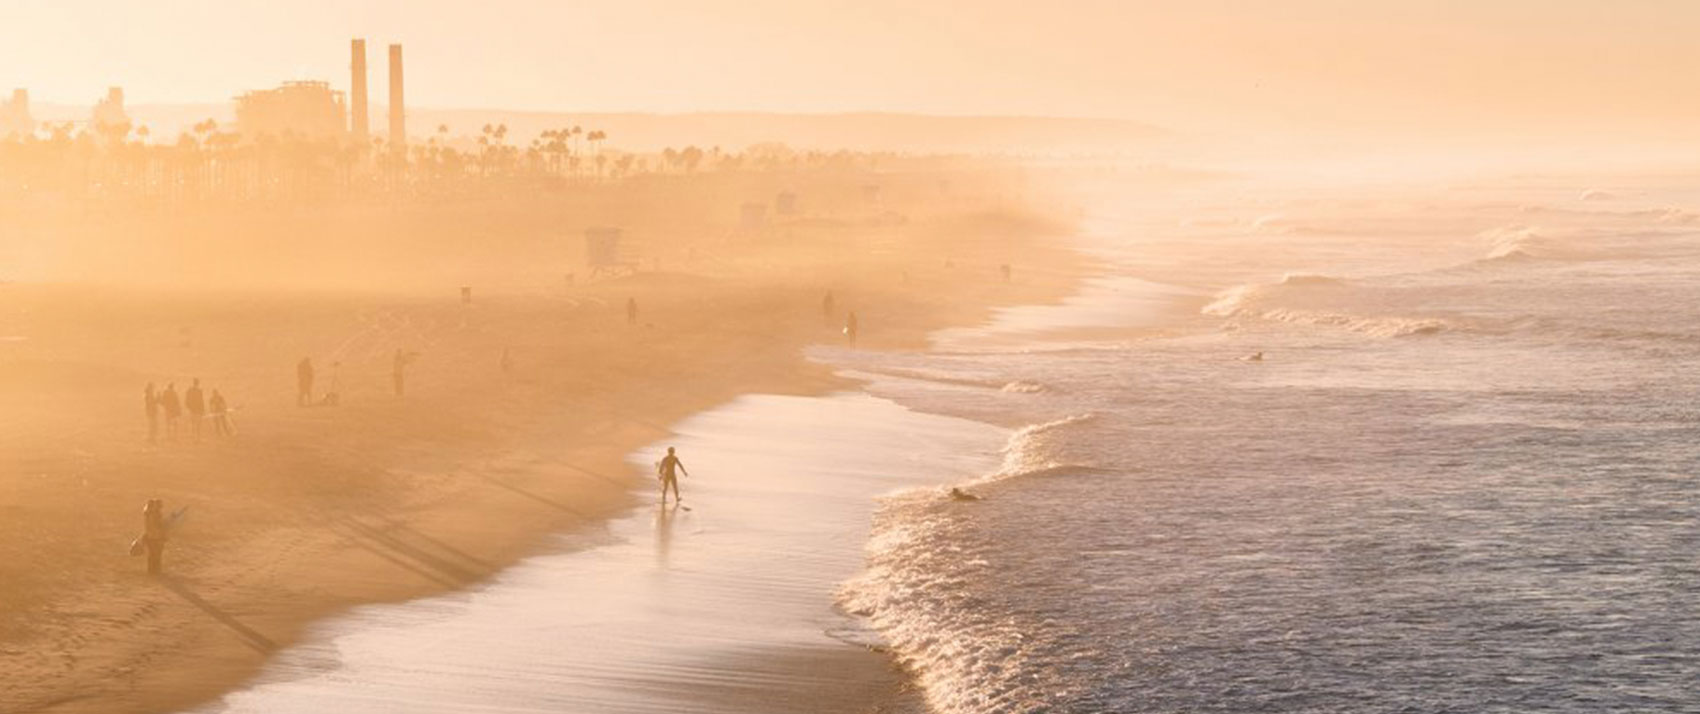 Kimpton Shorebreak Resort set in Huntington Beach